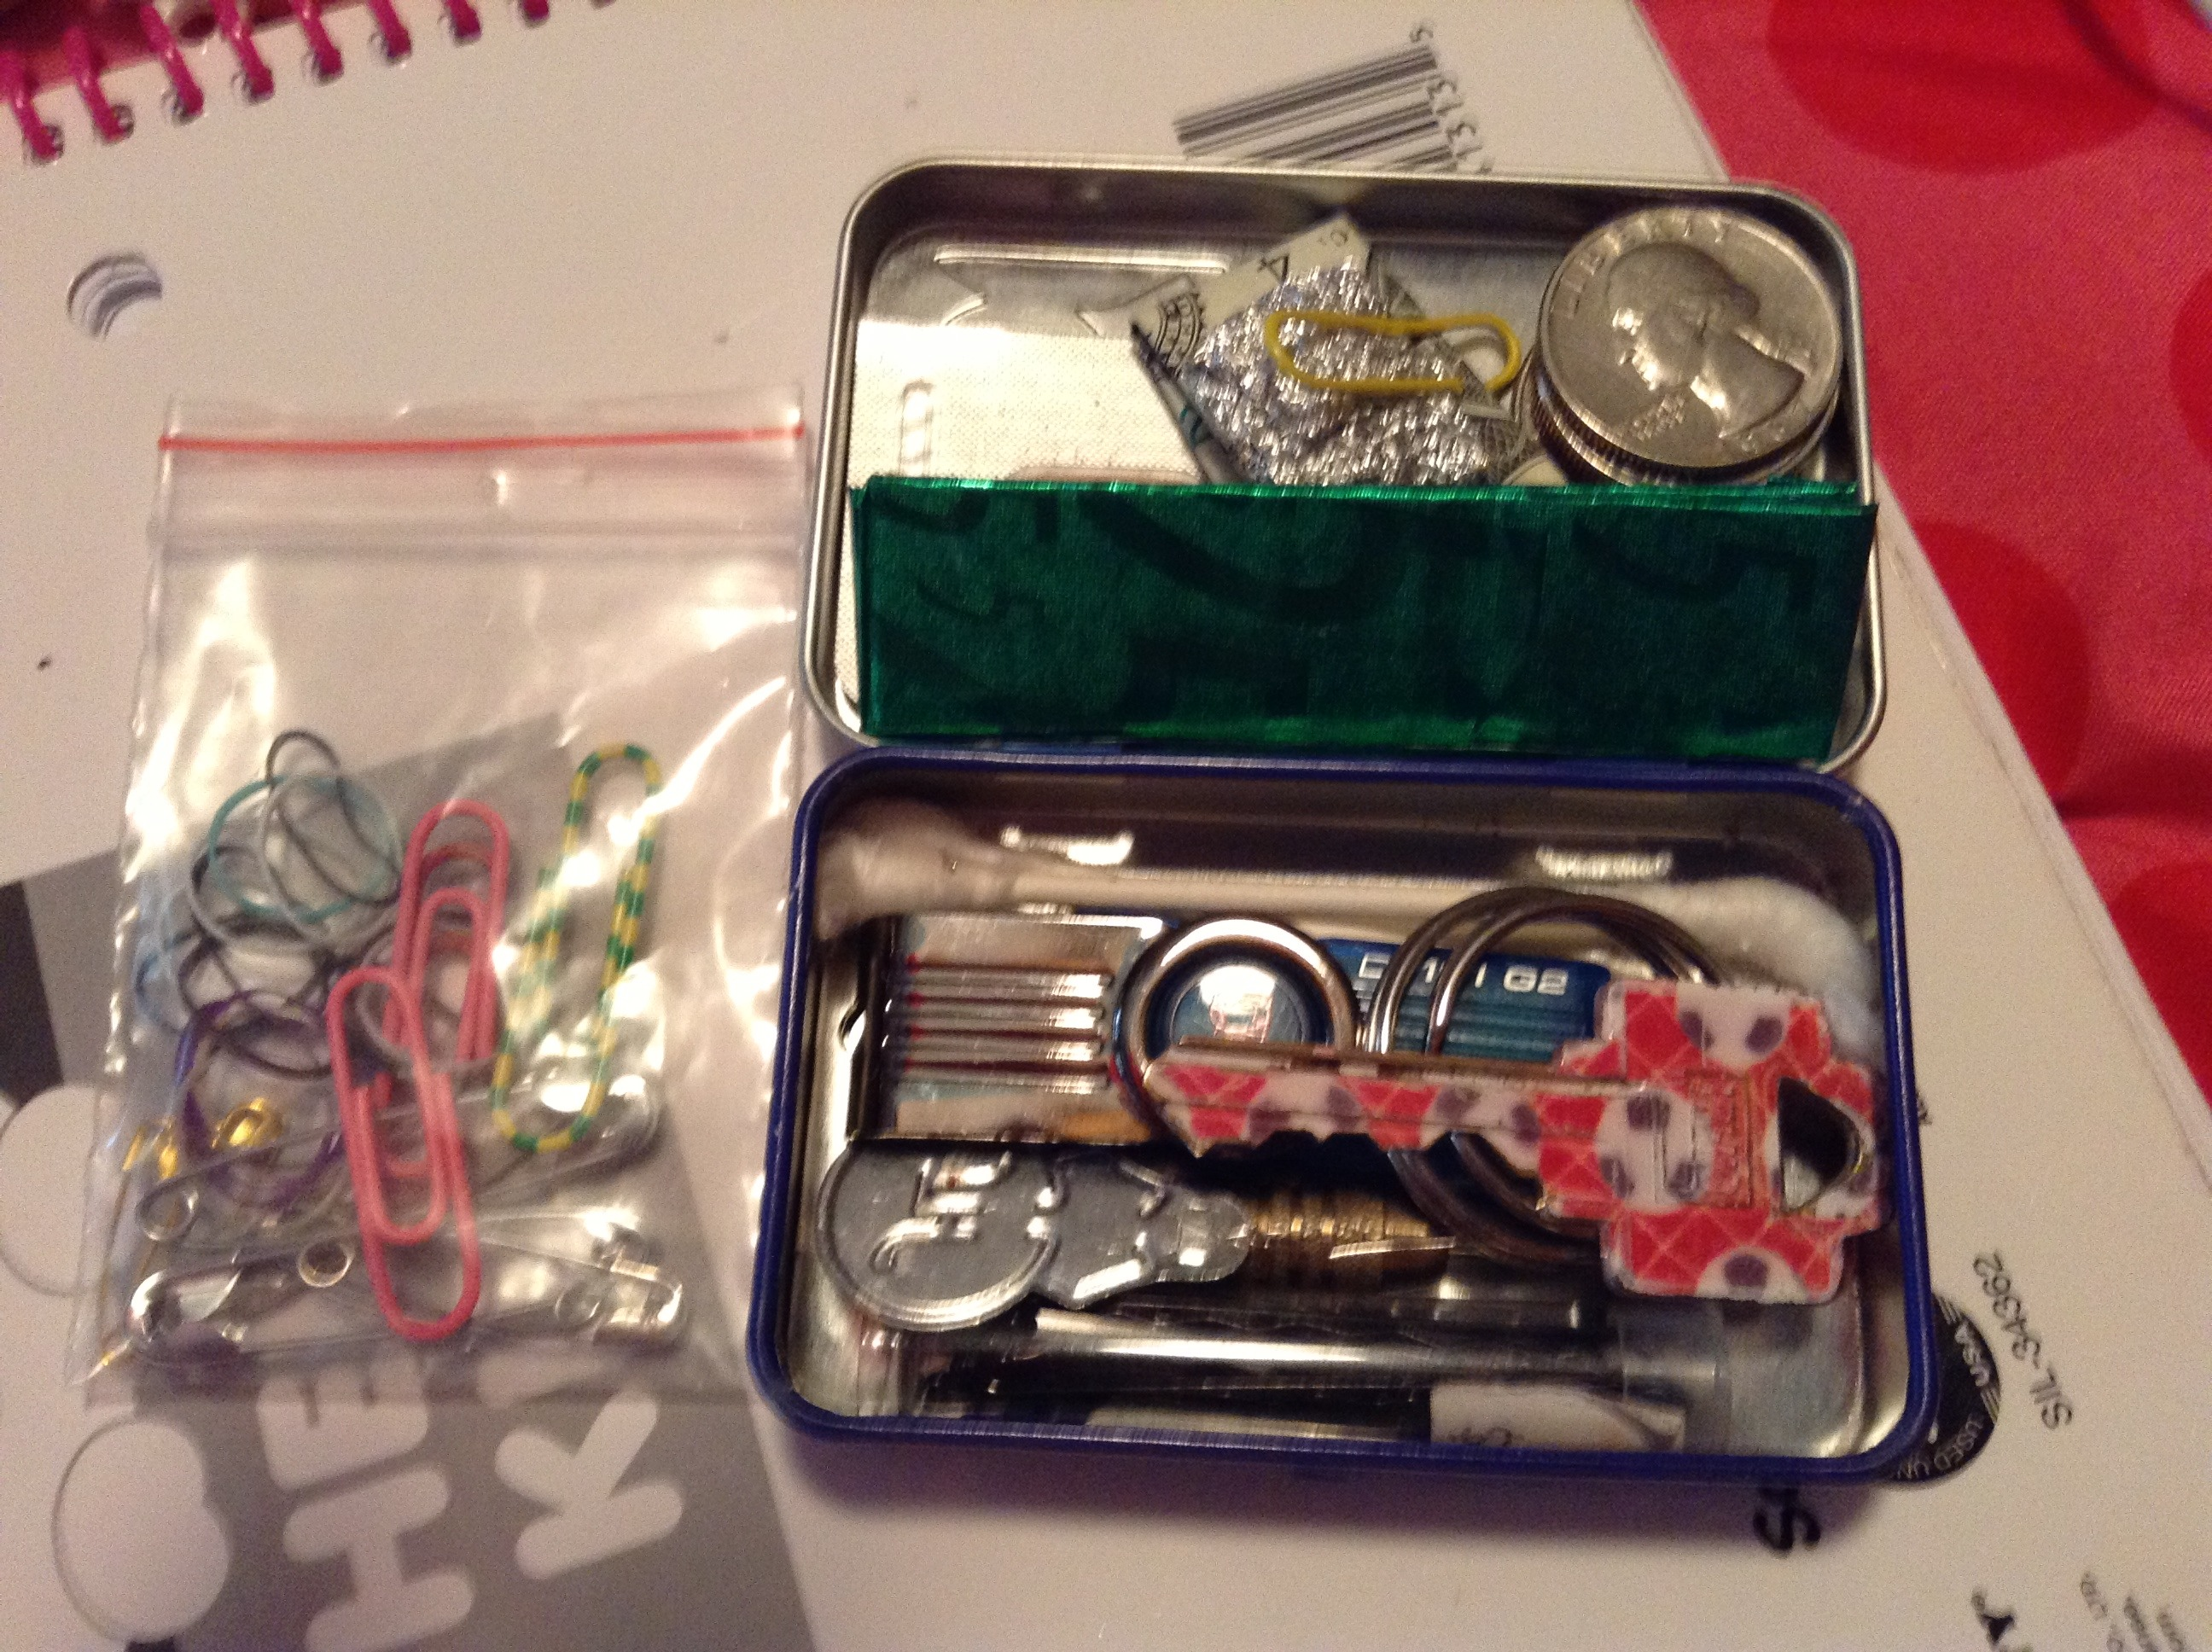 Picture of Here Is the Small Kit All Packed Together!